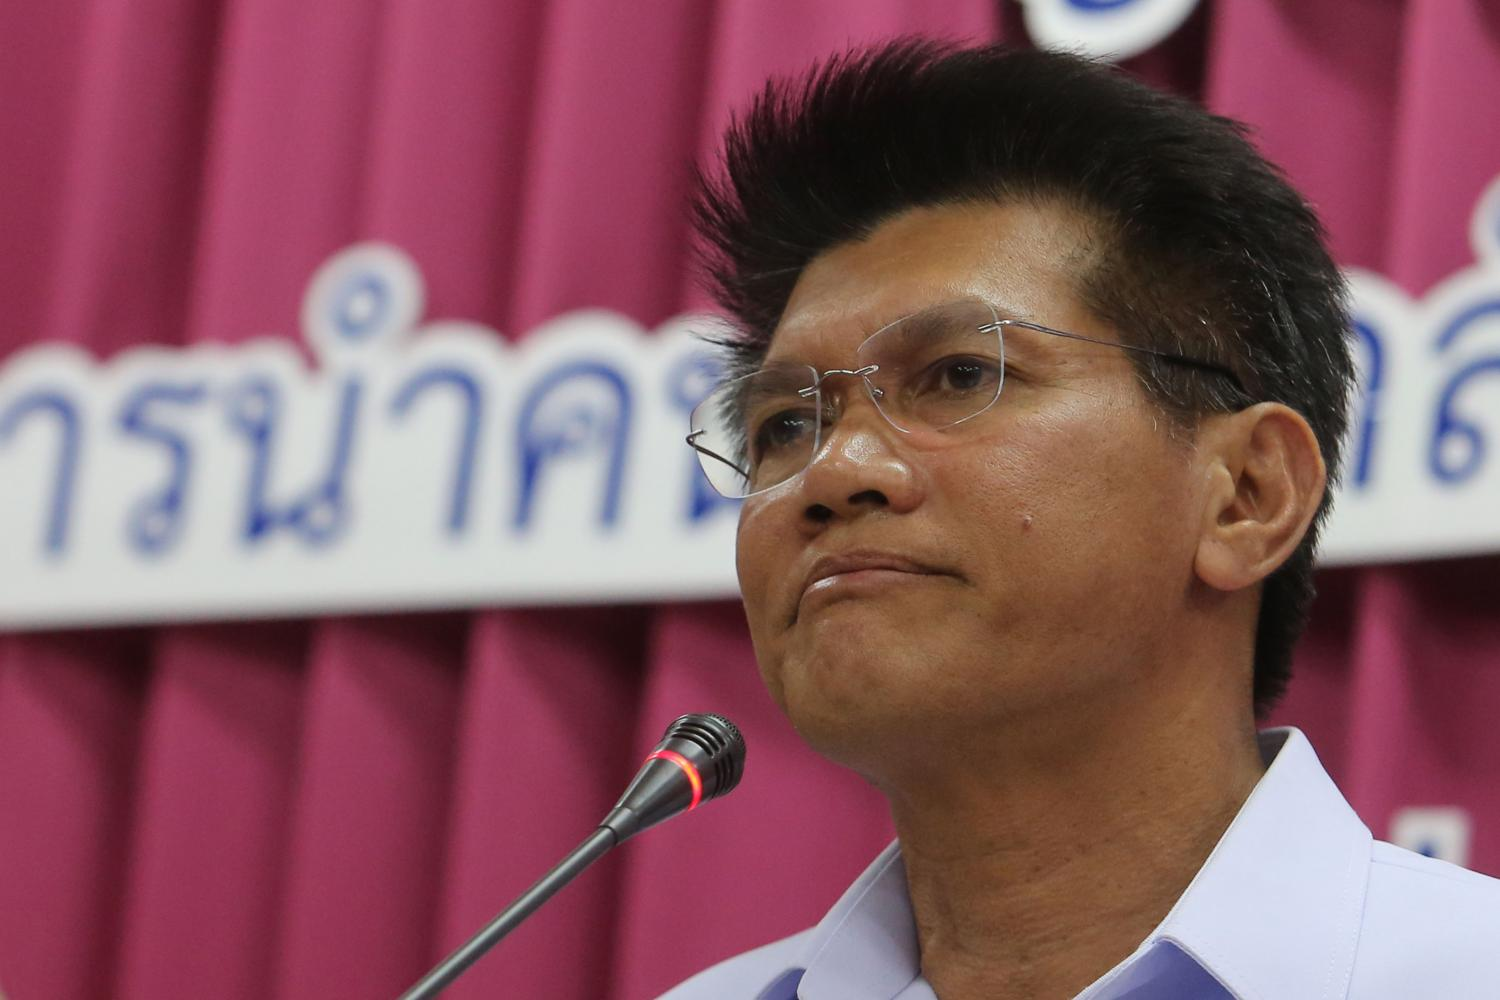 Deputy Public Health Minister Sathit Pitutecha who is also an MP for Rayong has apologised to local people and vowed to rebuild confidence and health safety in the province after an infected Covid-19 Egyptian airman was reported in the province last week.Wichan Charoenkiatpakul